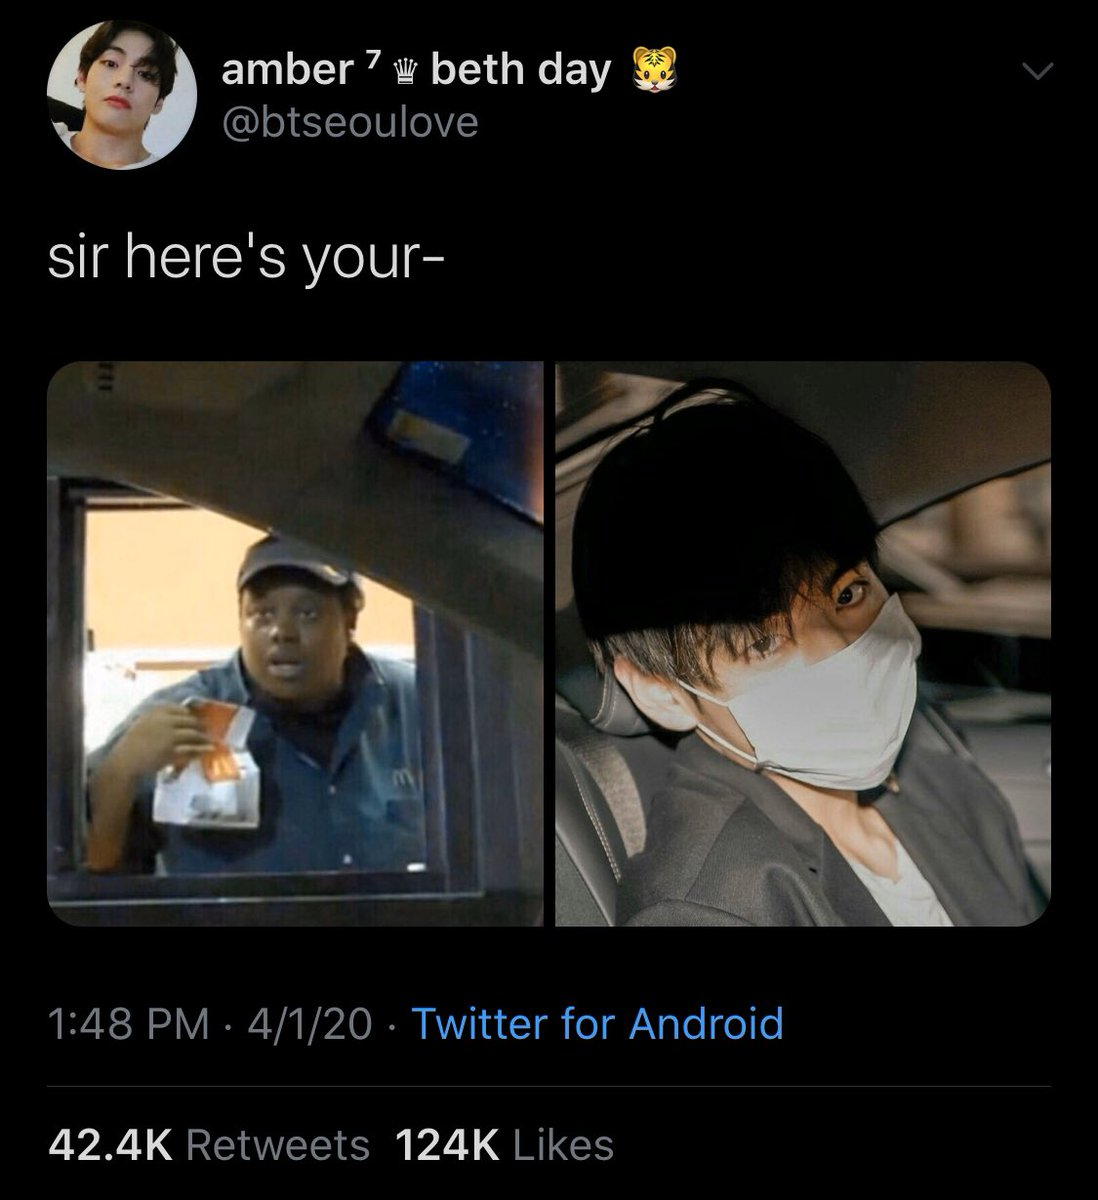 I just know jungkook saw this tweet that blew up so that's why he took a selfie in the car pic.twitter.com/4wdnRat0Na